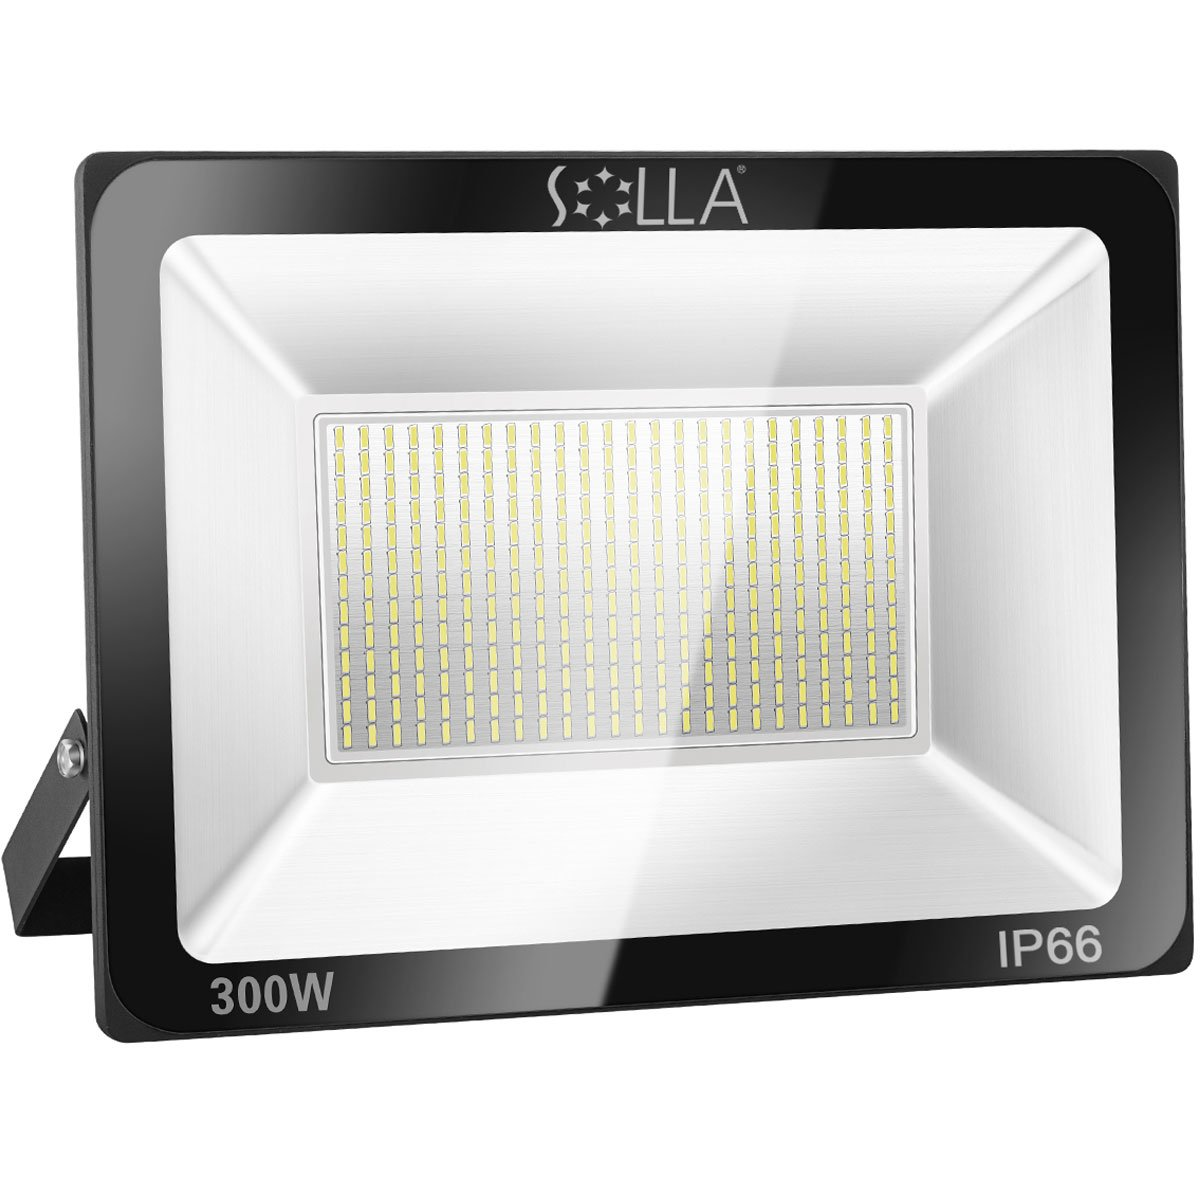 SOLLA 300W LED Flood Light, IP66 Waterproof, 24000lm, 1600W Equivalent, Super Bright Outdoor Security Lights, 6000K Daylight White, Floodlight Landscape Wall Lights